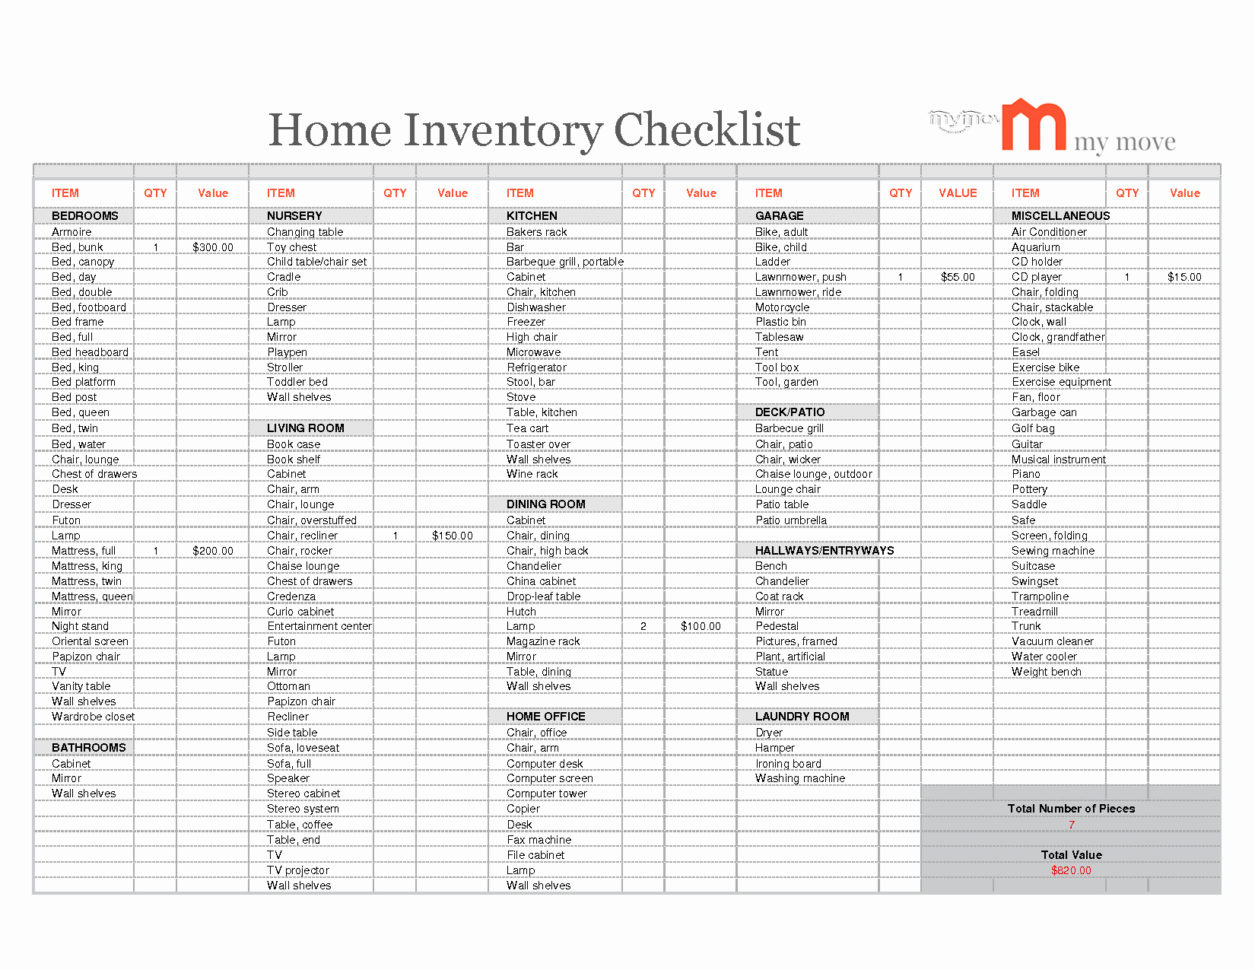 Inventory Household Items Excel Spreadsheet In Household Inventory Spreadsheet Home Google Docs Excel For Moving